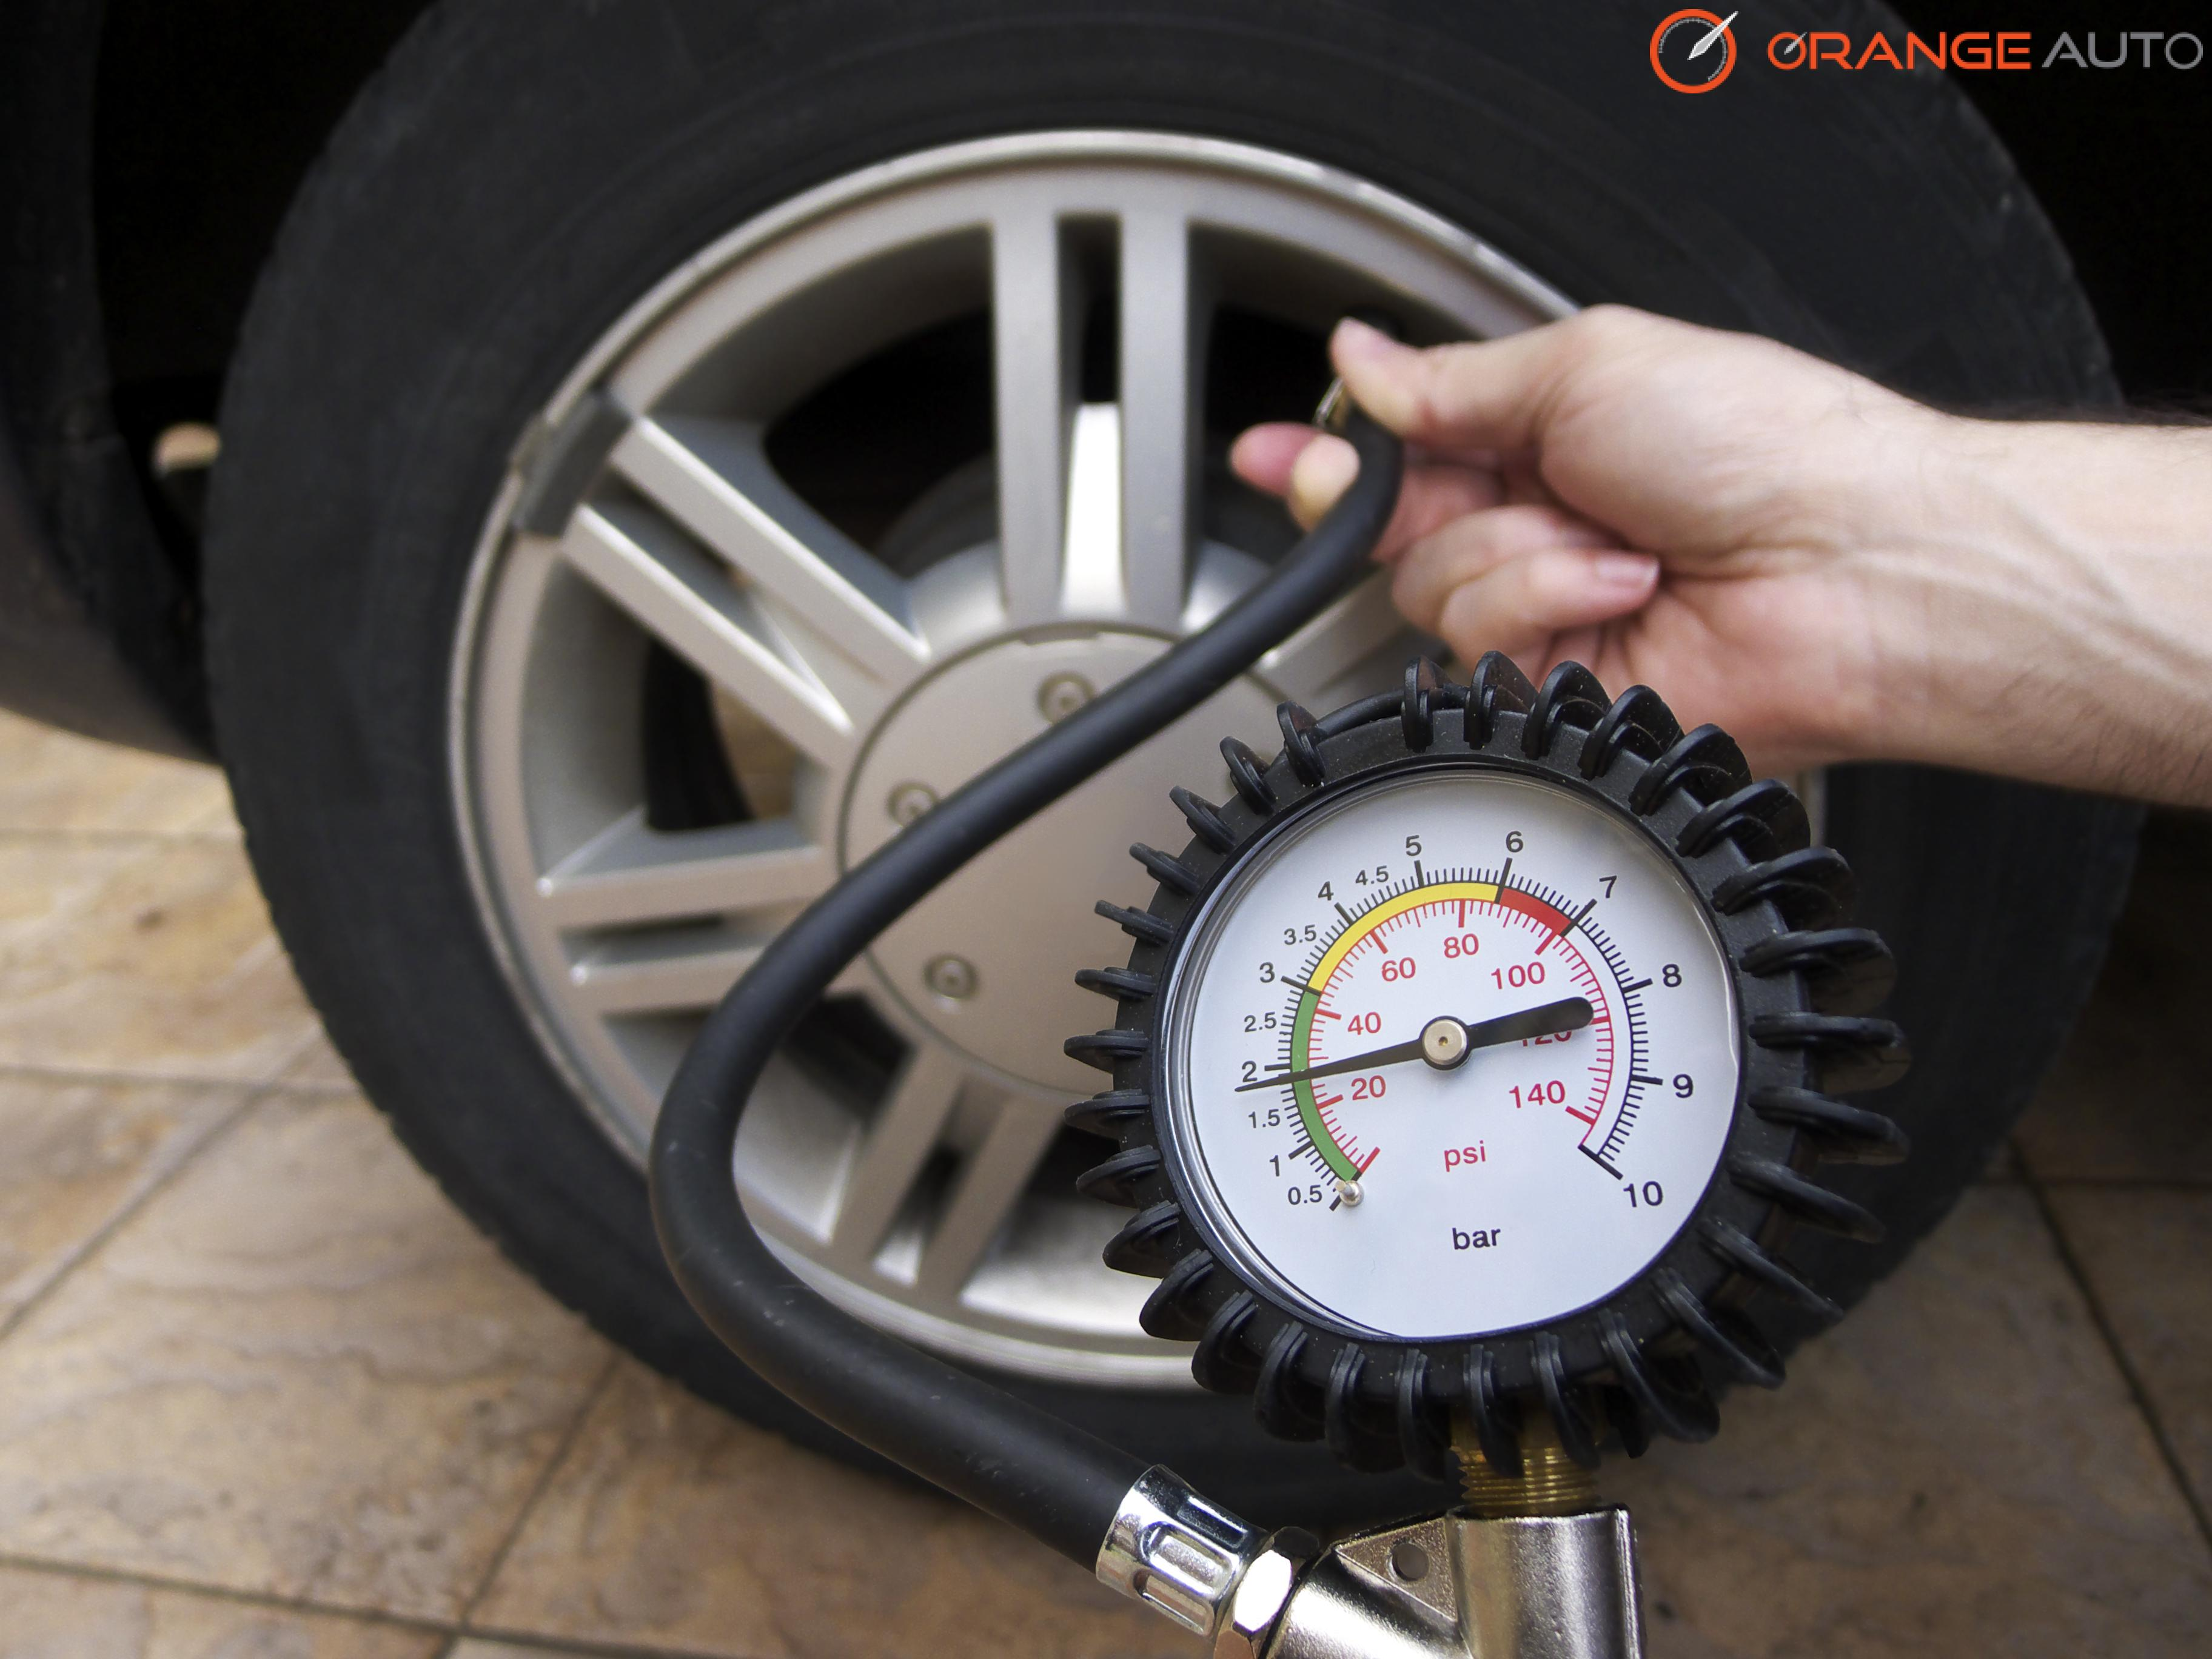 Precautions Motorists can Take to Minimize Tire Blowouts